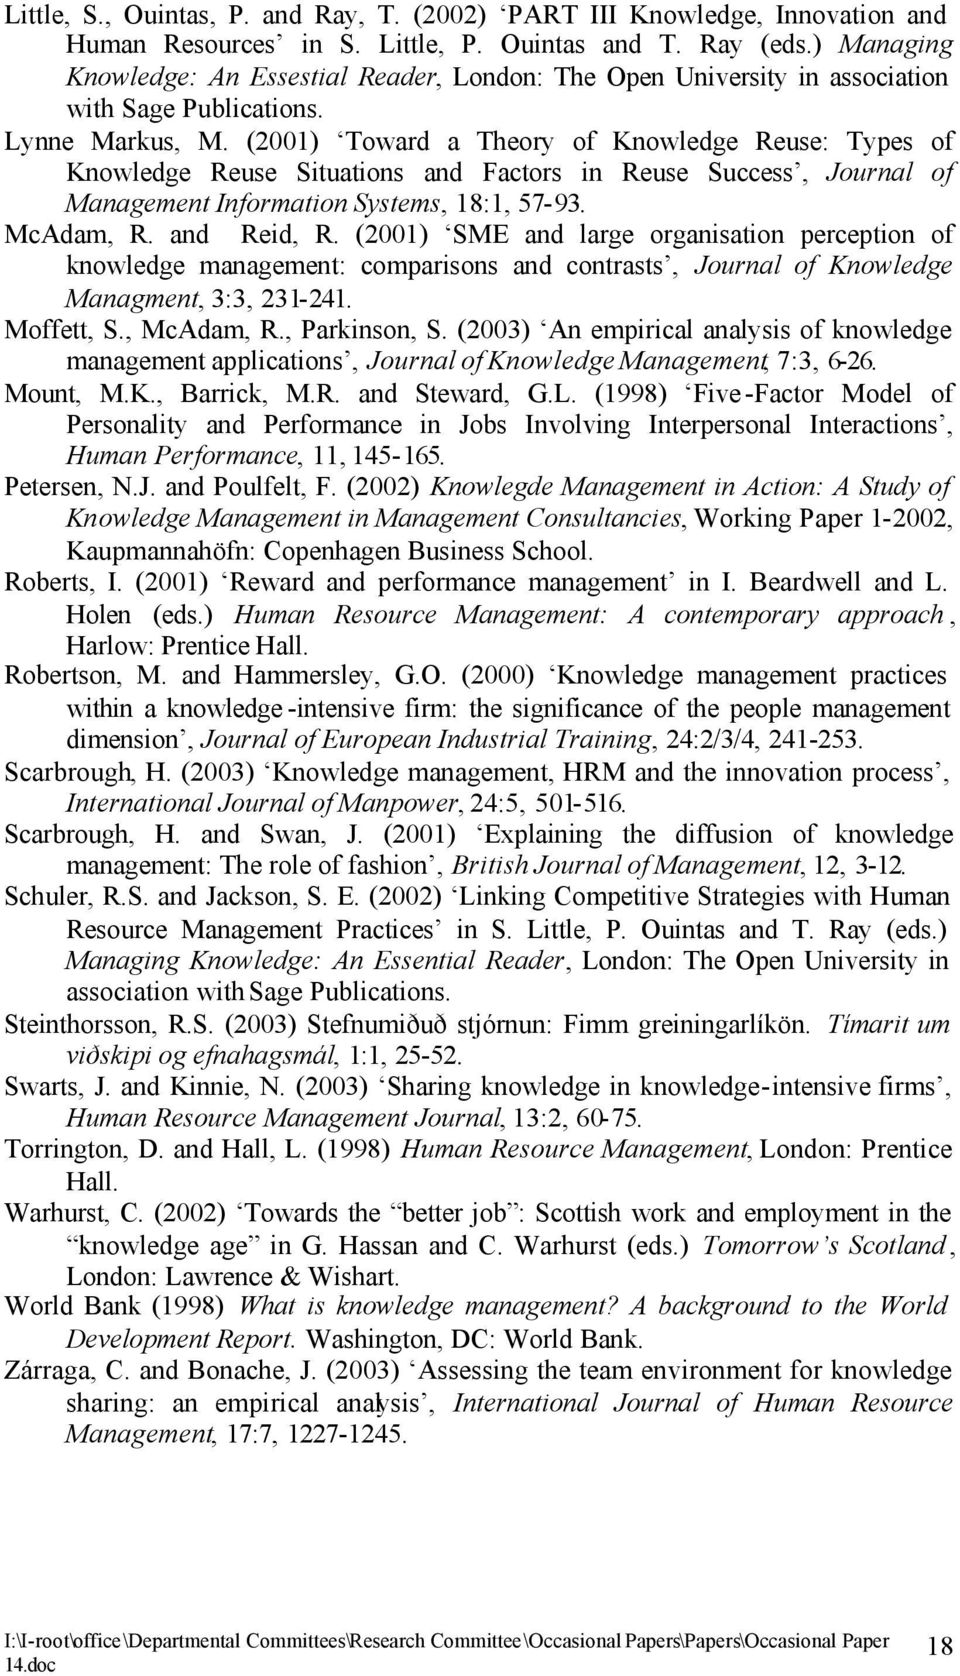 (2001) Toward a Theory of Knowledge Reuse: Types of Knowledge Reuse Situations and Factors in Reuse Success, Journal of Management Information Systems, 18:1, 57-93. McAdam, R. and Reid, R.